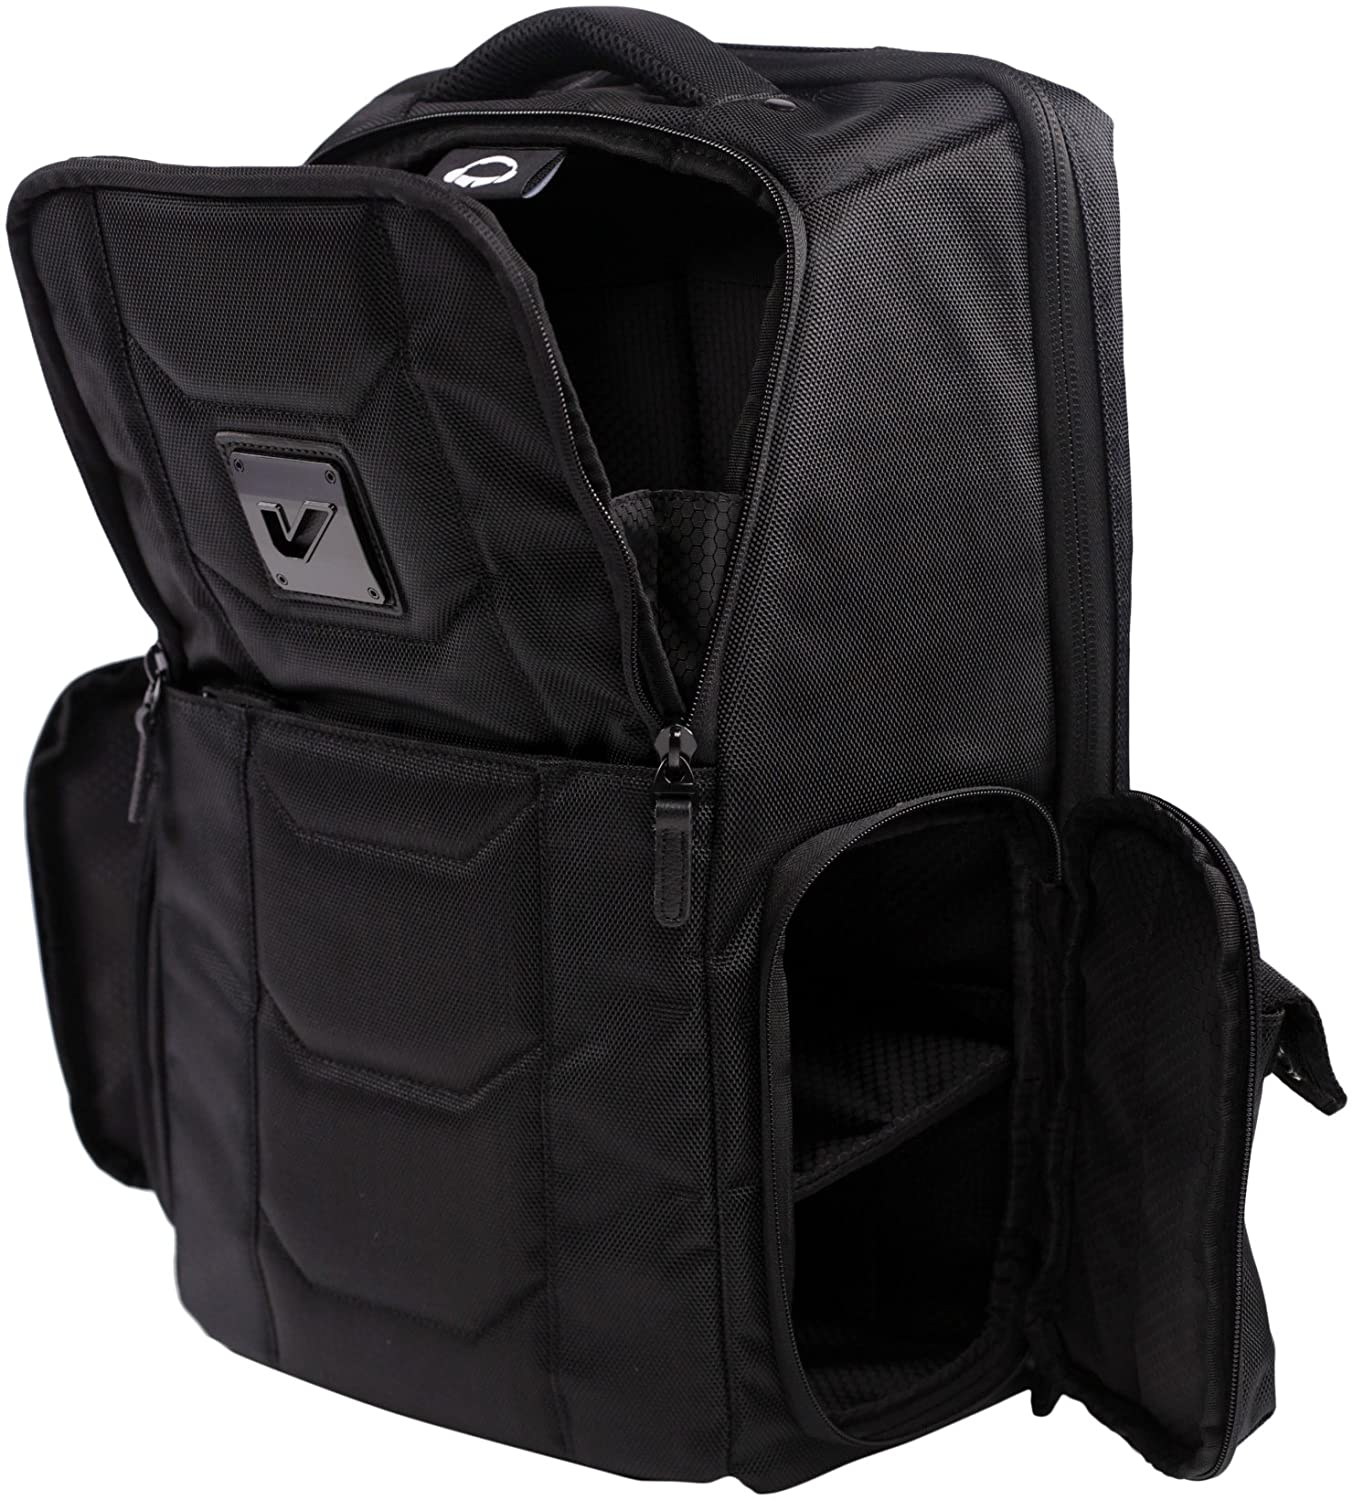 Gruv Gear Club Bag Elite  Flight-Smart Tech Backpack, Stealth Black